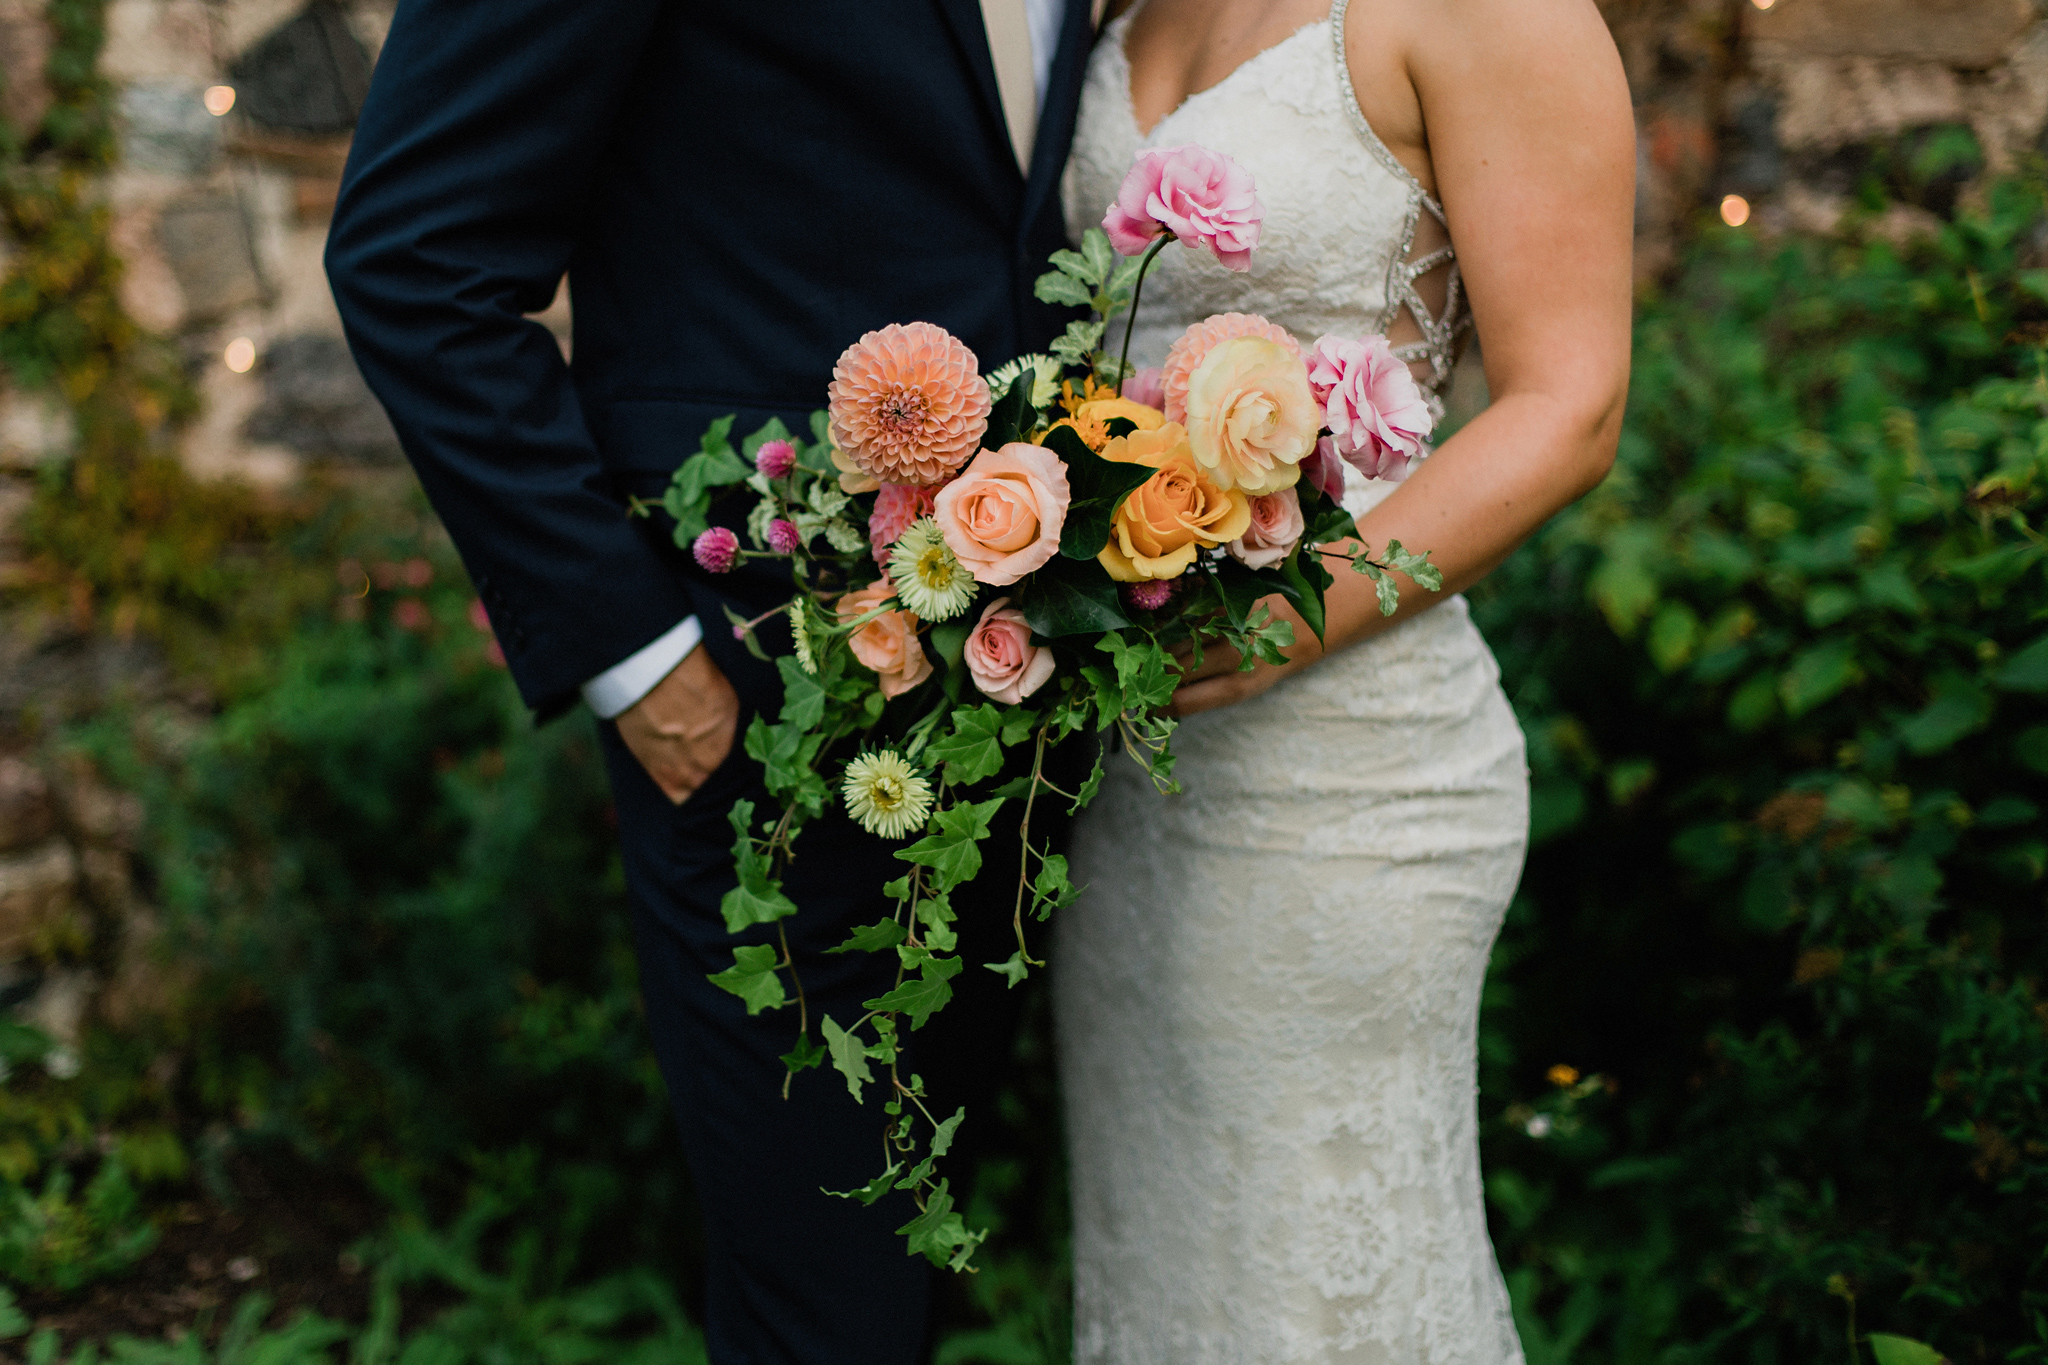 A sunset coral toned bridal bouquet with trailing ivy